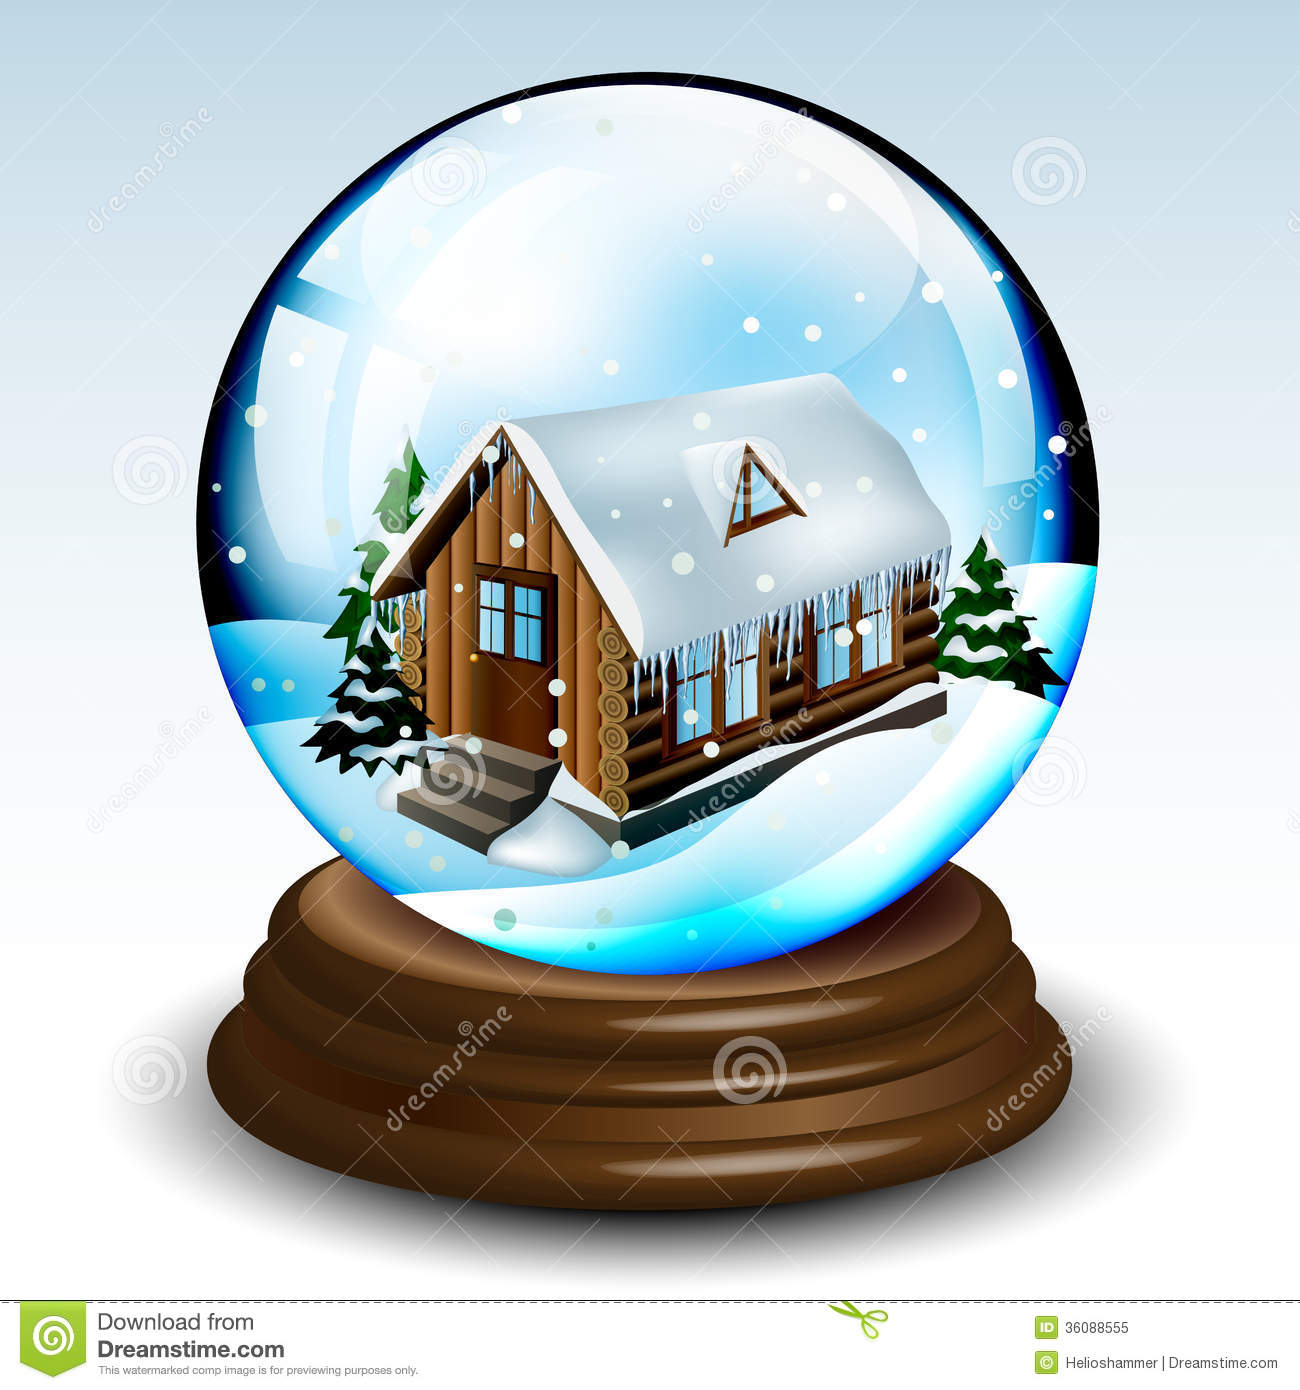 Snow globe with winter landscape, house and pines on wood base eps10.